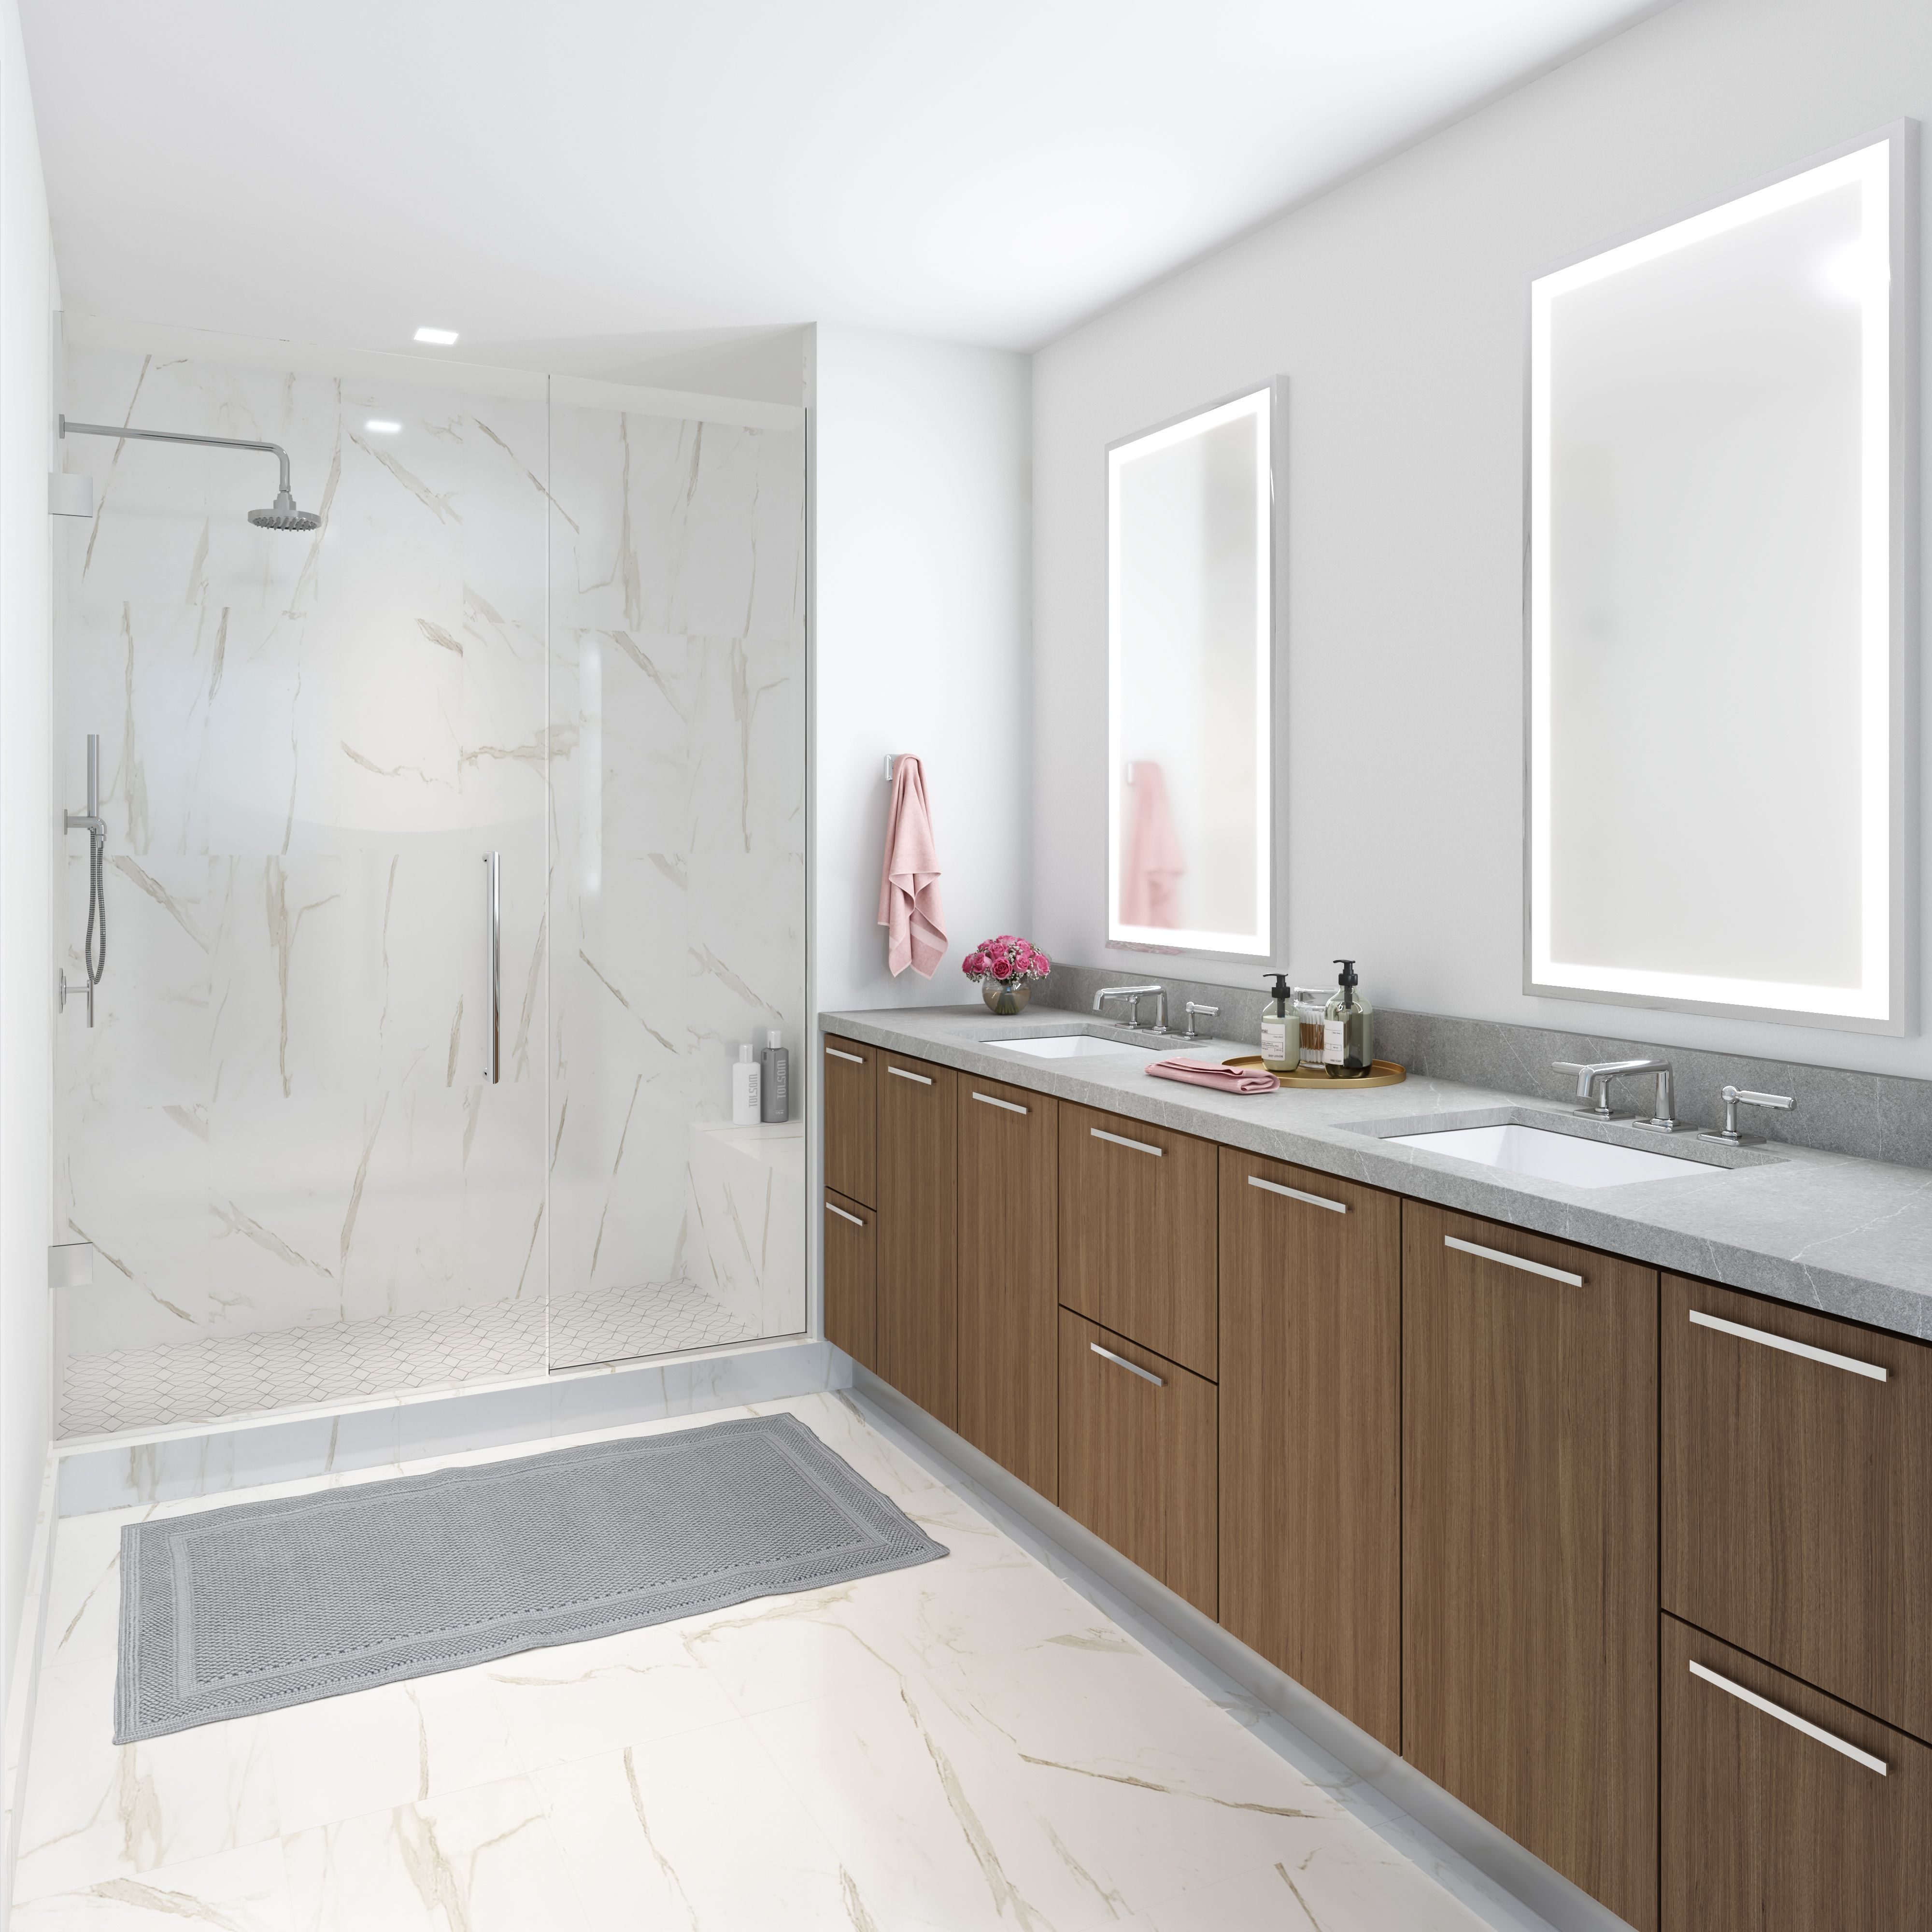 Bathroom featured in the Residence D1 By MUSE in Washington, VA